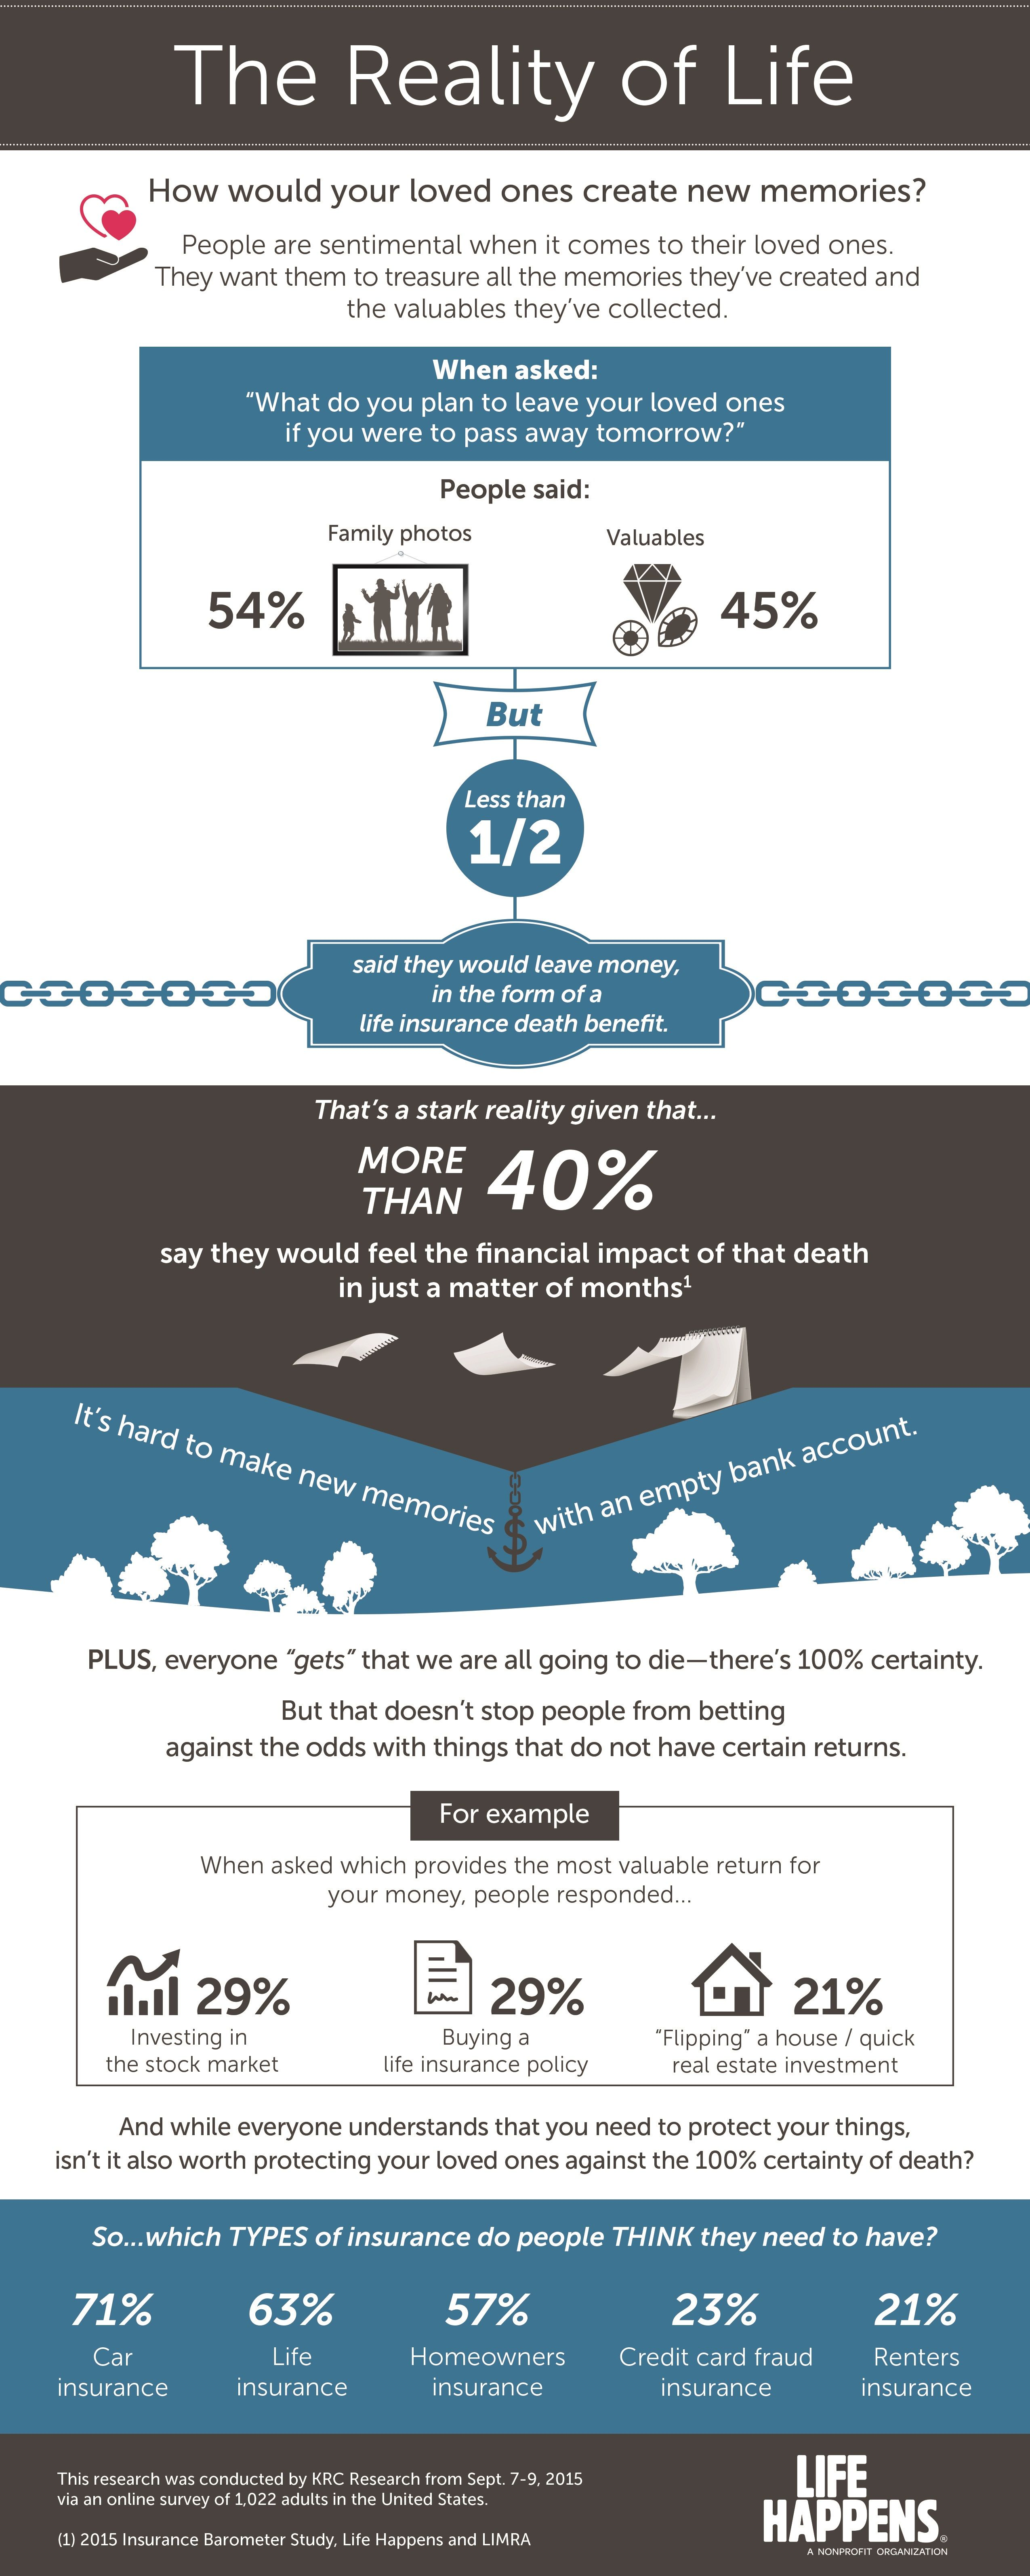 Life Insurance Buys Vs Needs An Infographic Reality Of Life Family Life Insurance Life Happens